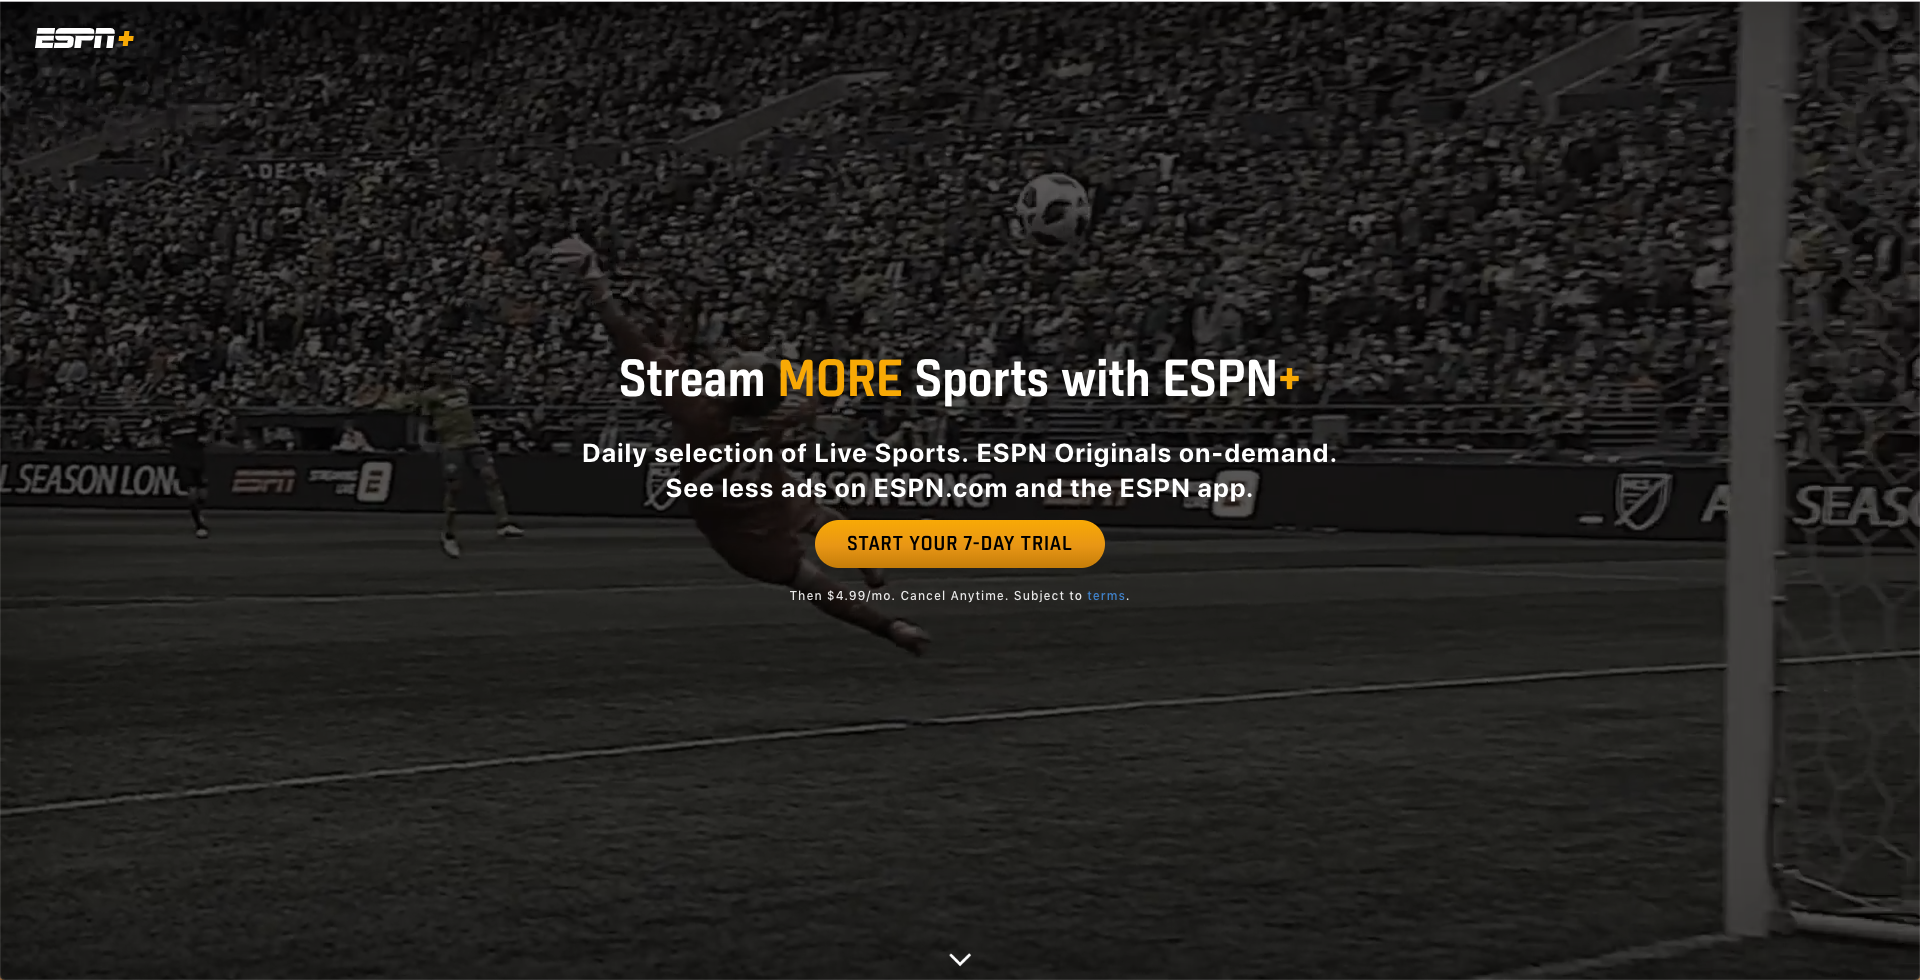 How to Watch ESPN Live Without Cable 2019 - Top 7 Options